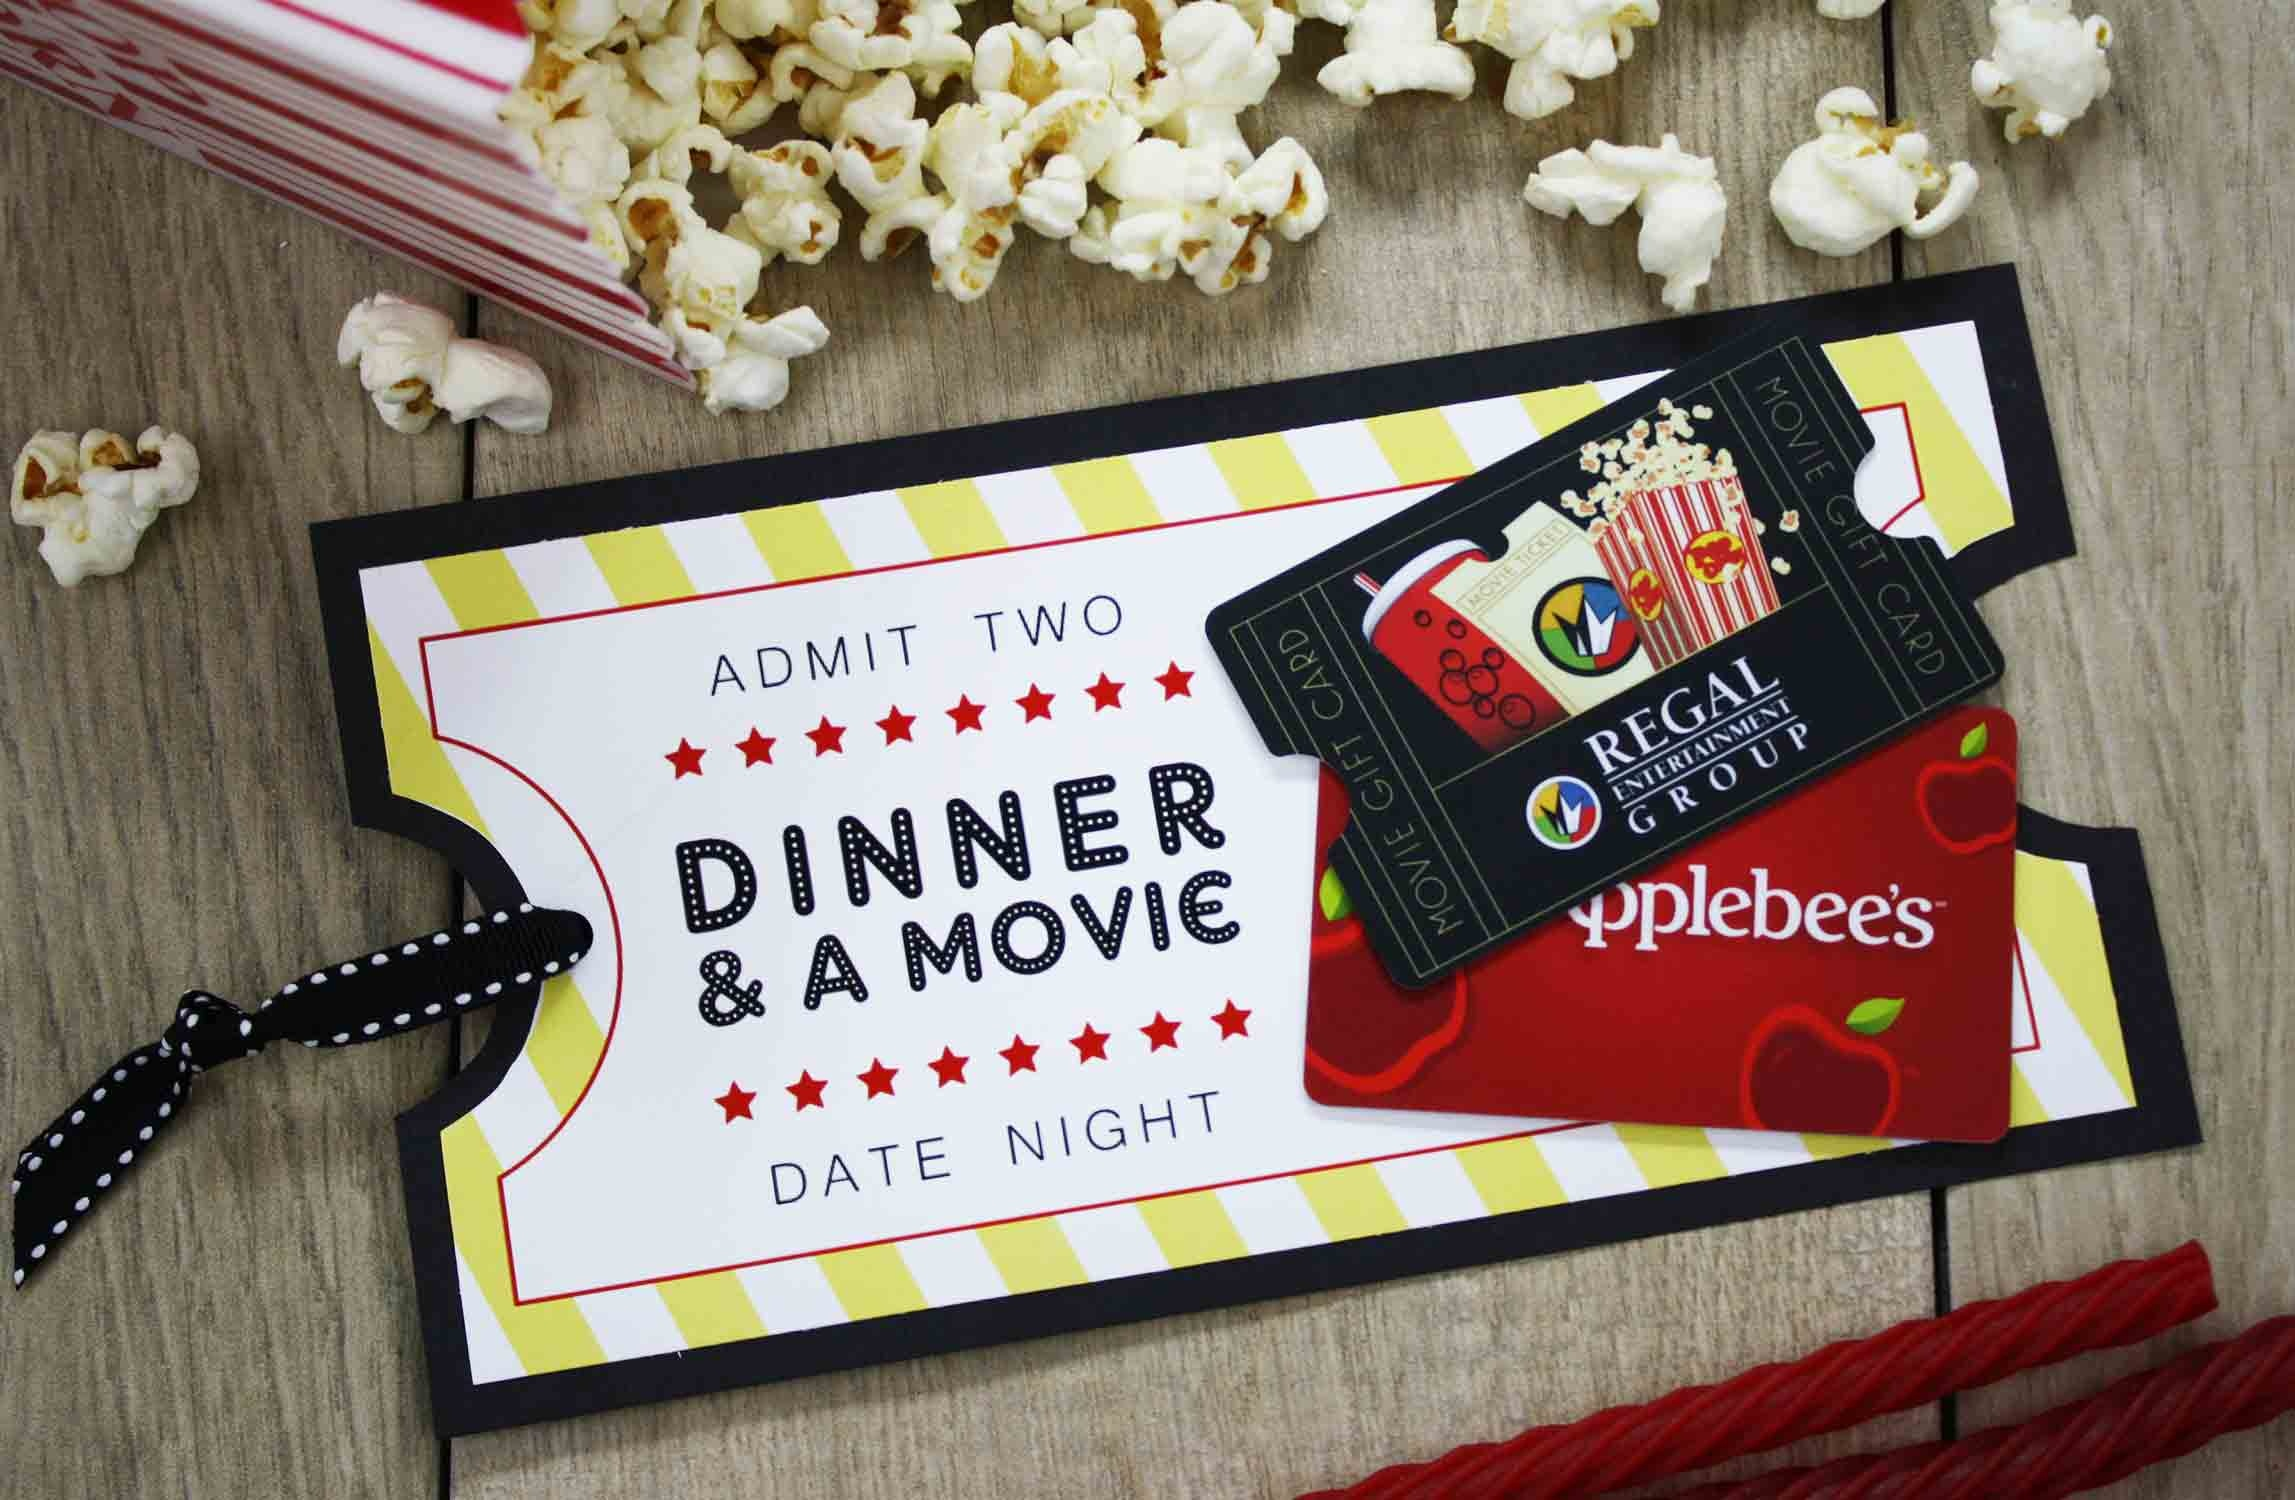 How To Use Regal Gift Card On Fandango - Gift Card - Regal Cinema Free Popcorn Printable Coupons